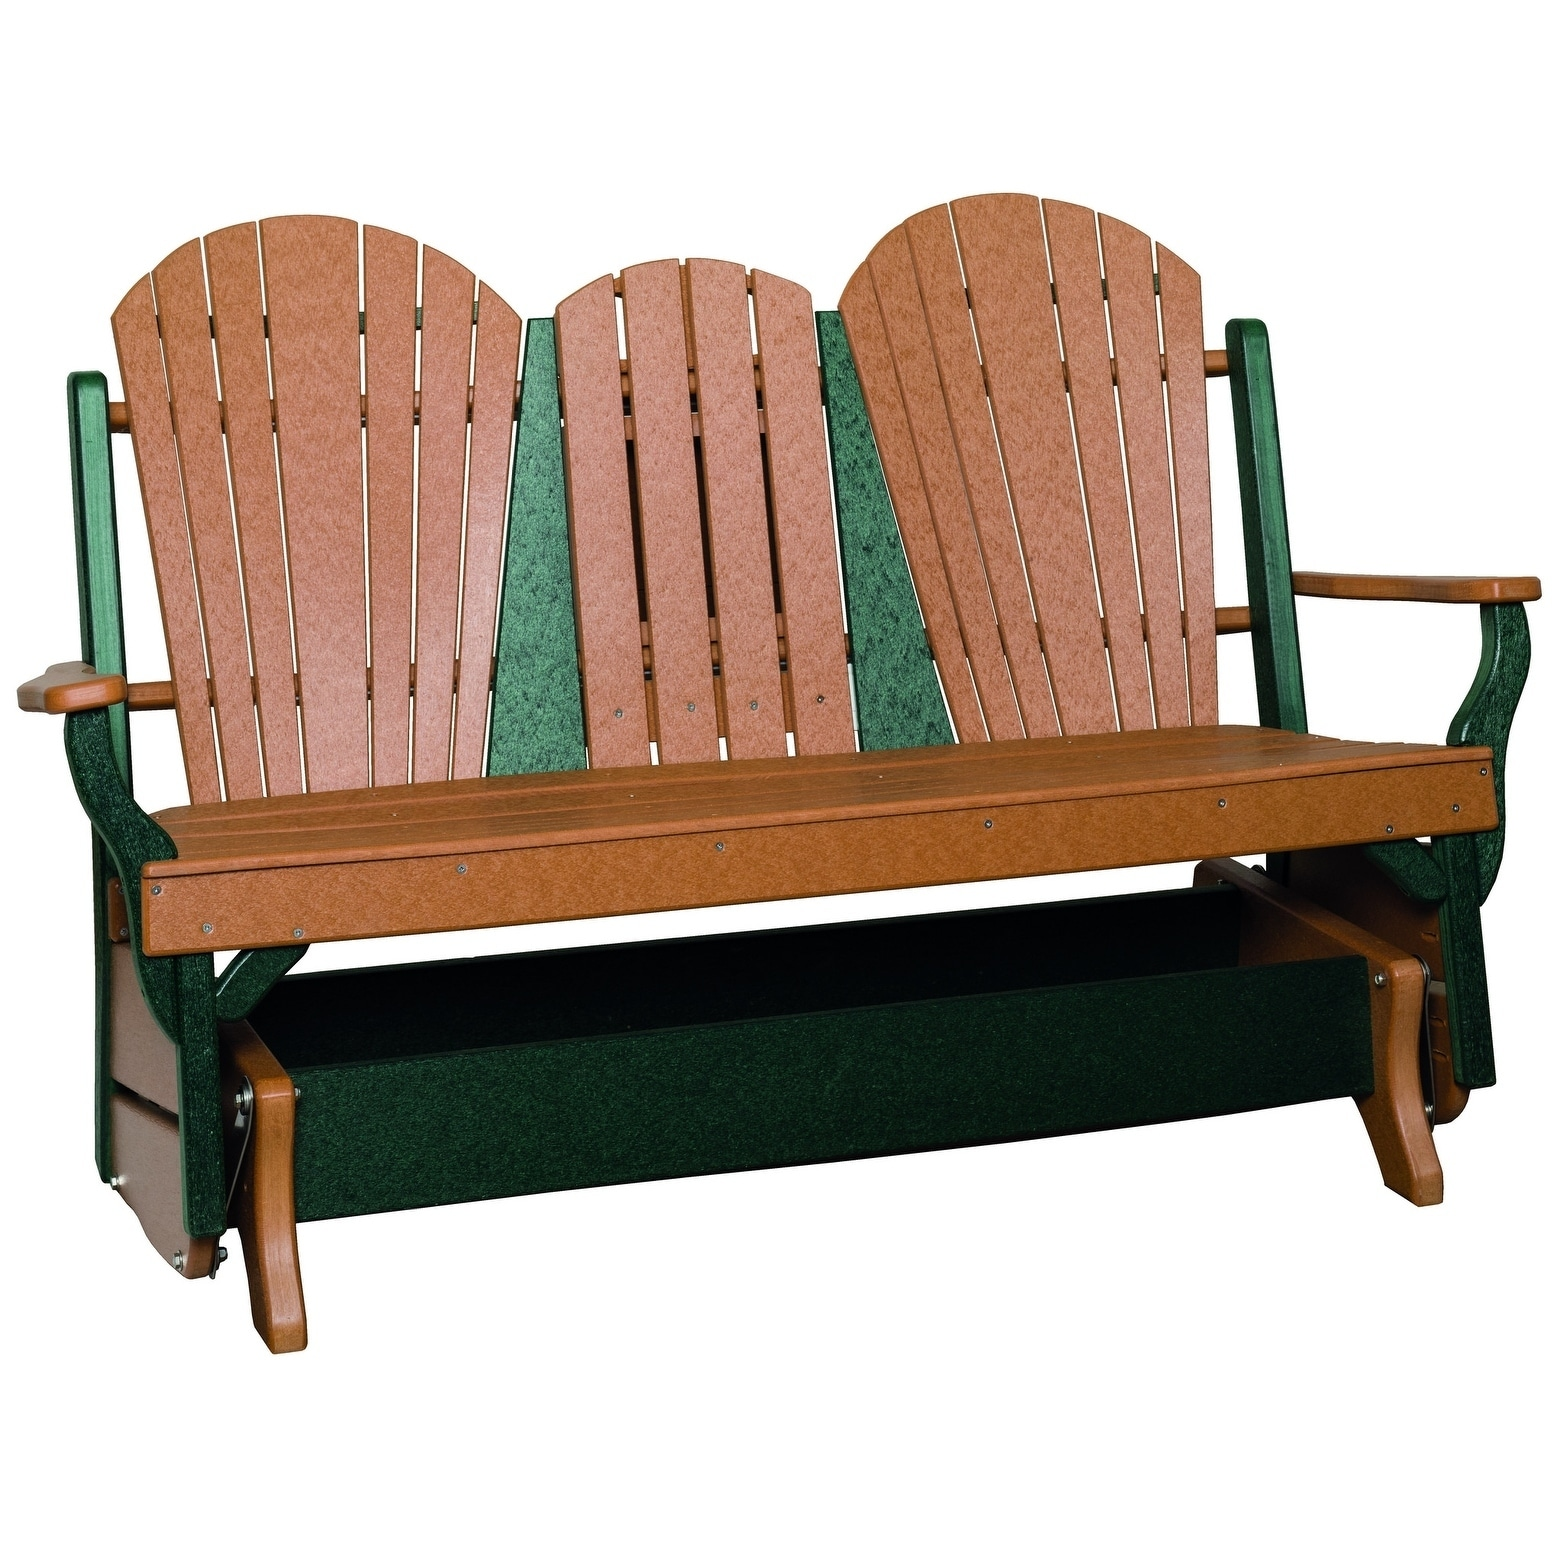 Picture of: Shop Outdoor Glider Bench W Center Drop Down Table Overstock 23116025